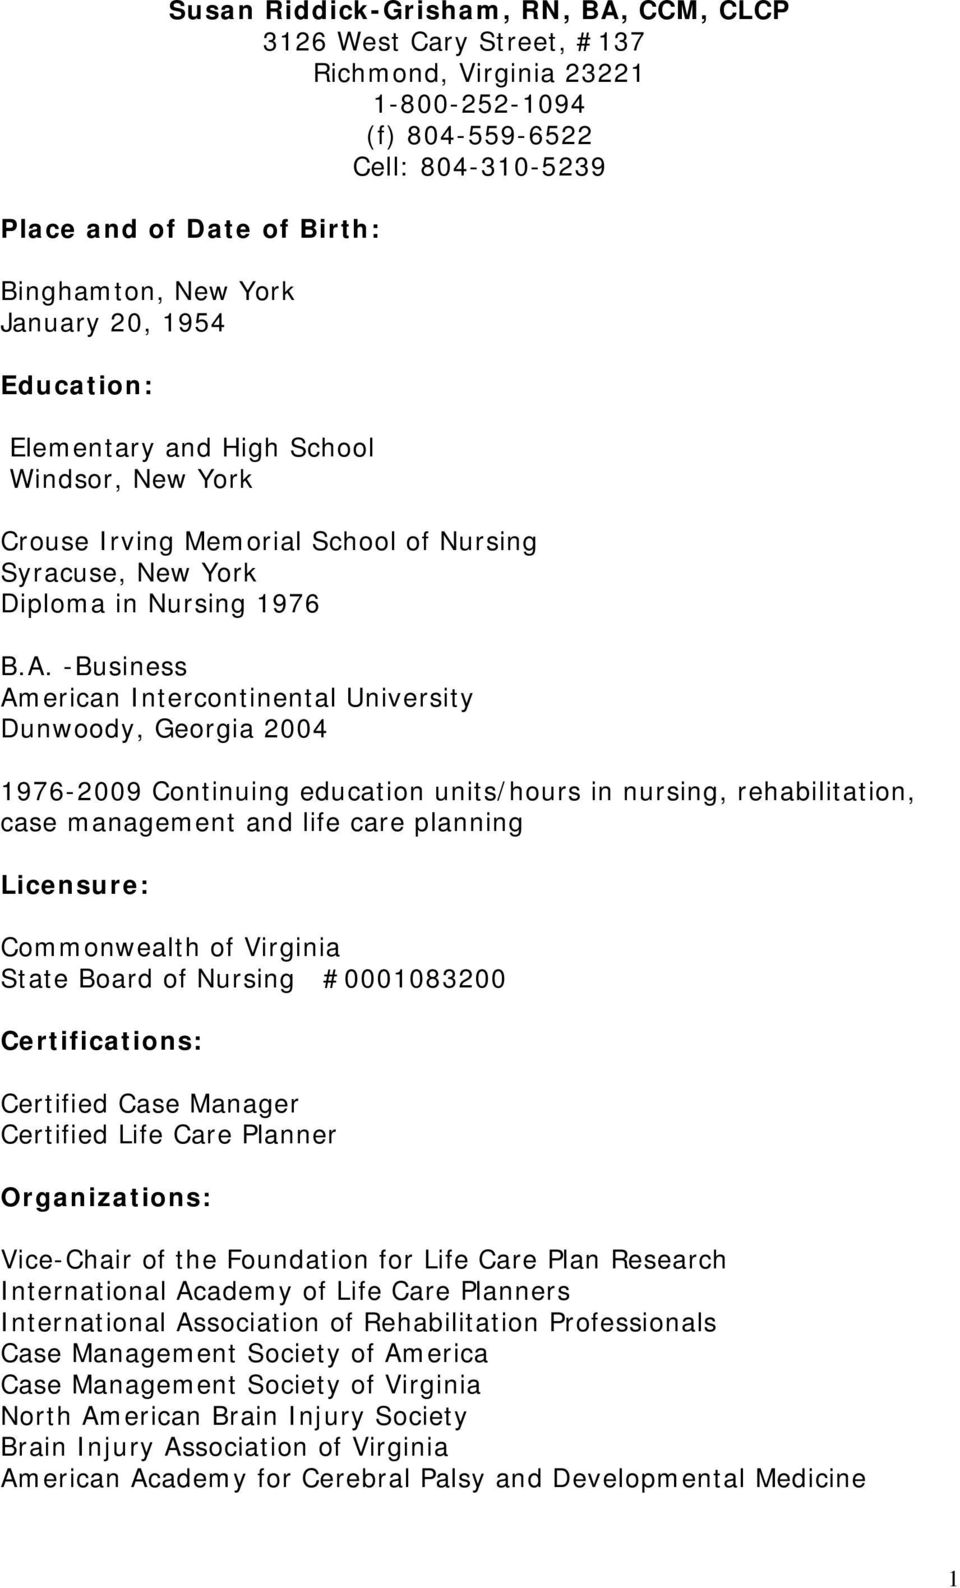 -Business American Intercontinental University Dunwoody, Georgia 2004 1976-2009 Continuing education units/hours in nursing, rehabilitation, case management and life care planning Licensure: